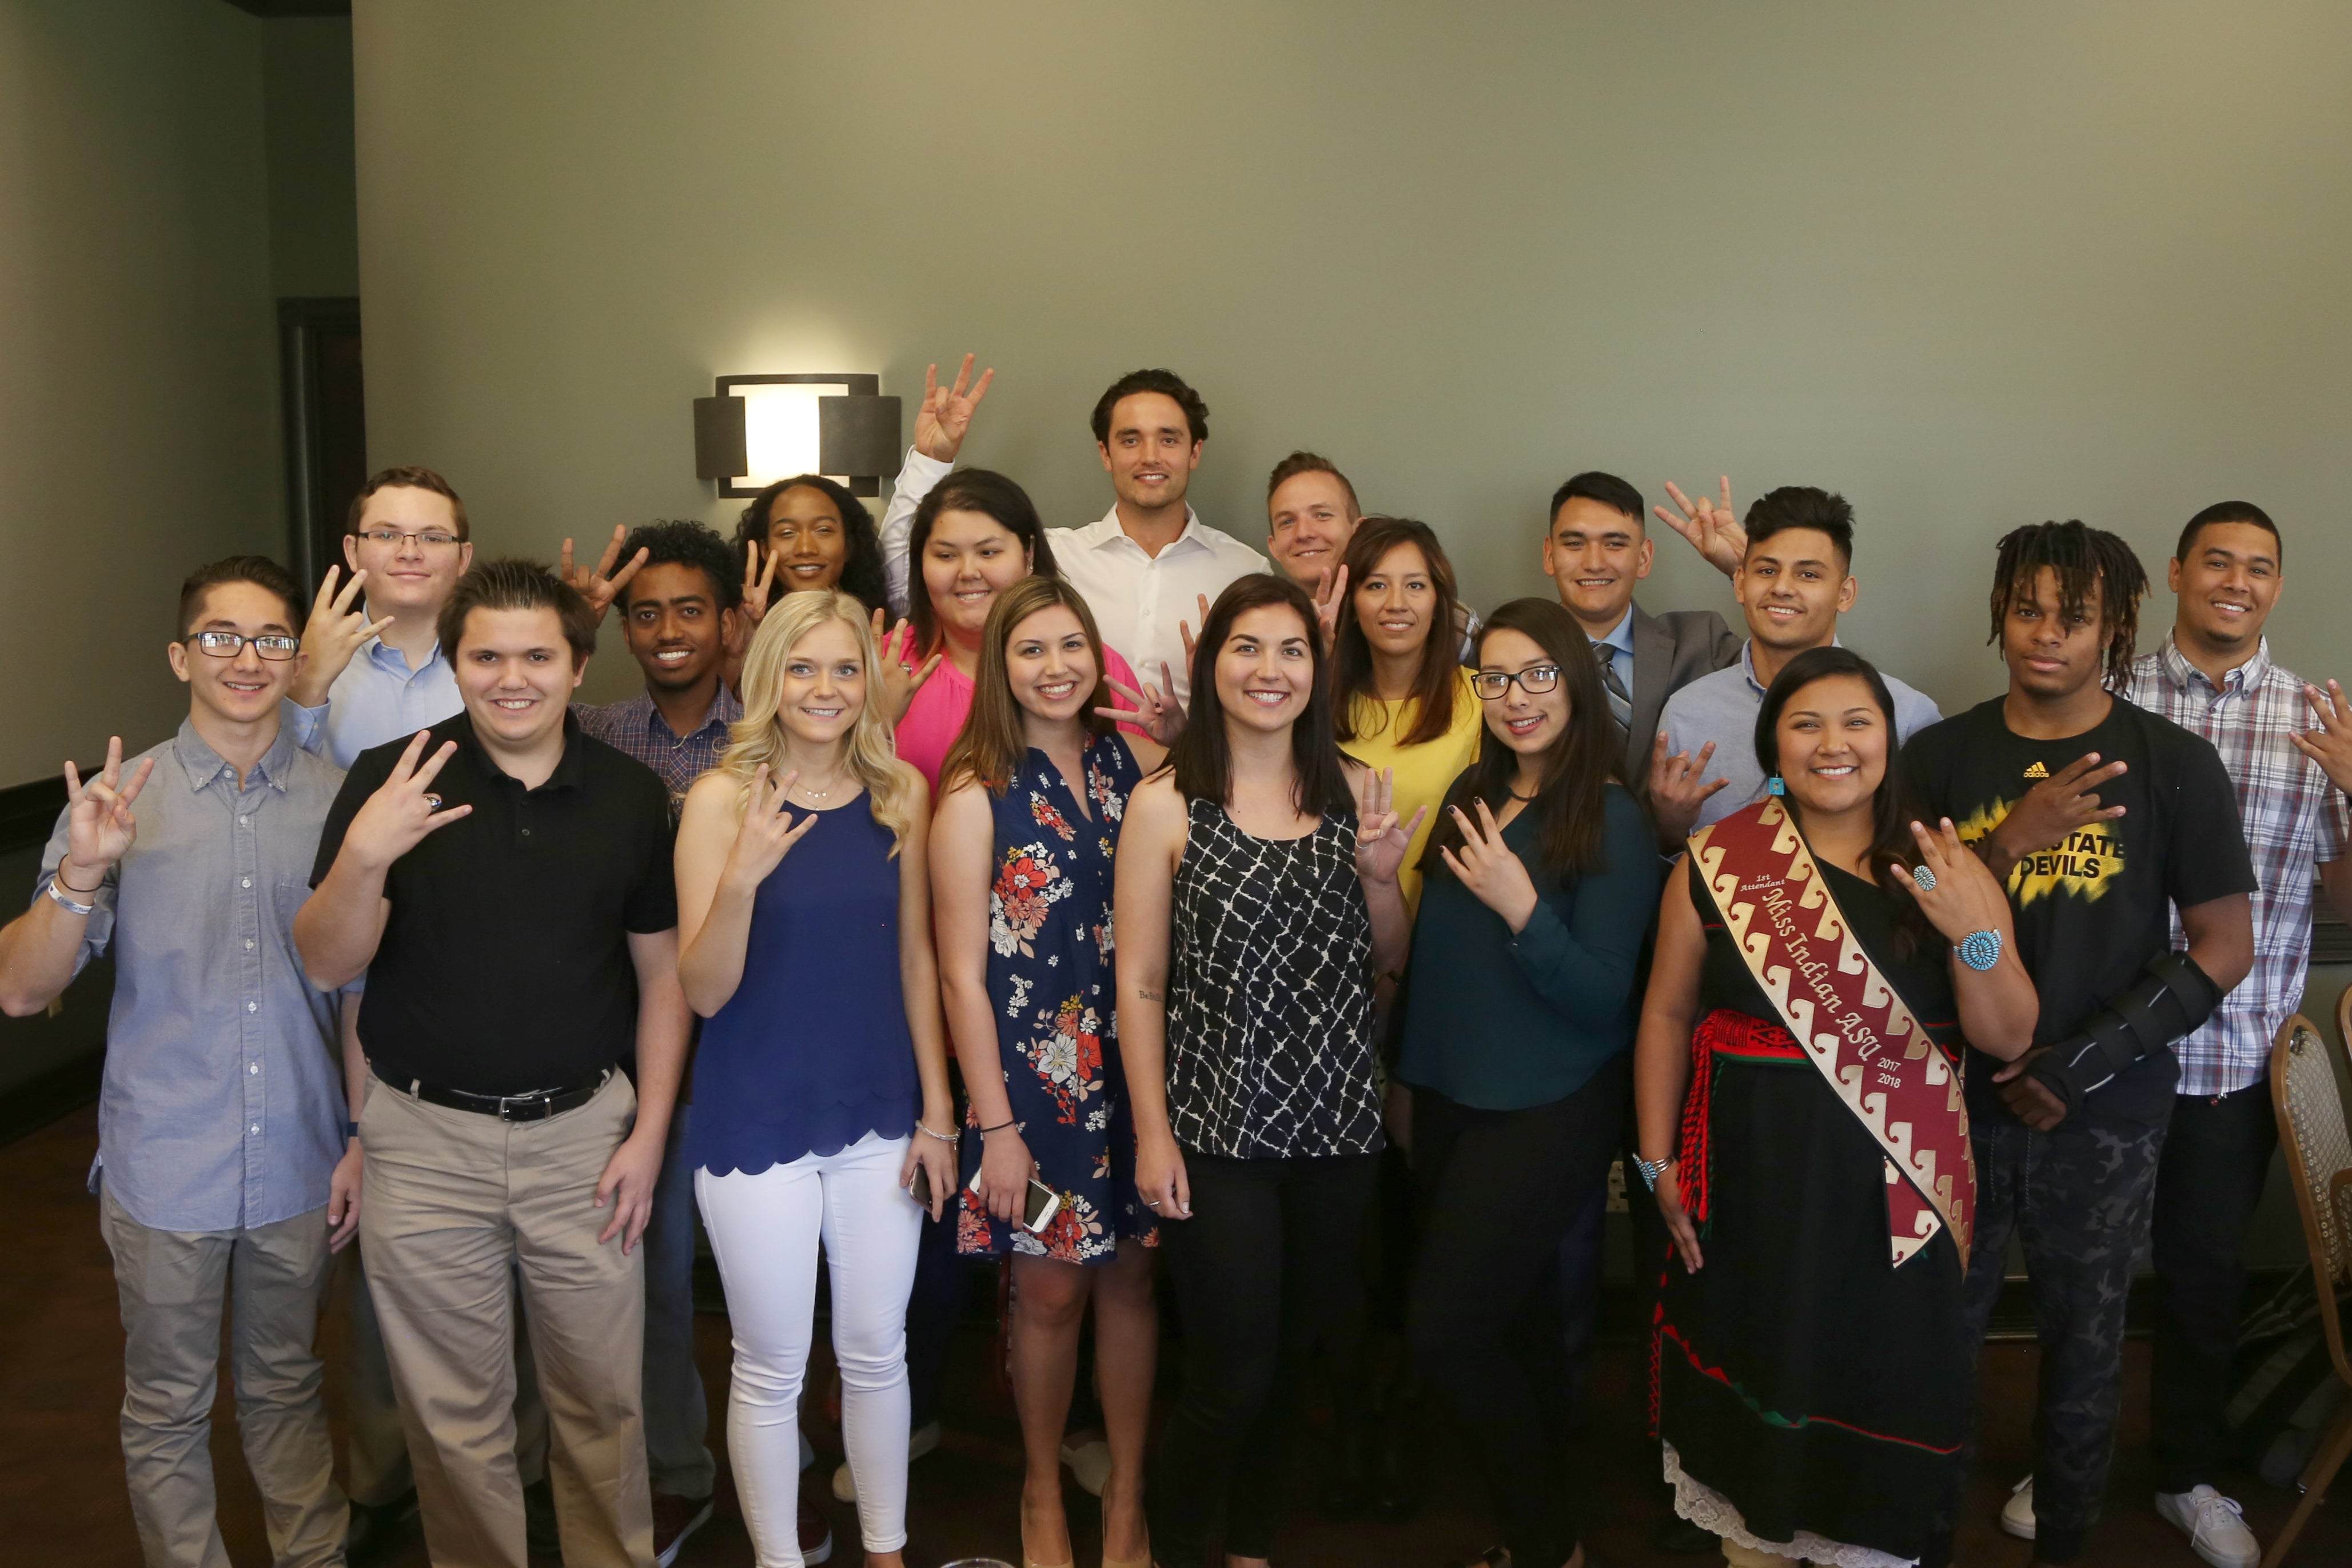 ASU College of Integrative Sciences and Arts alumnus Brock Osweiler visited with current ASU students at informal luncheon